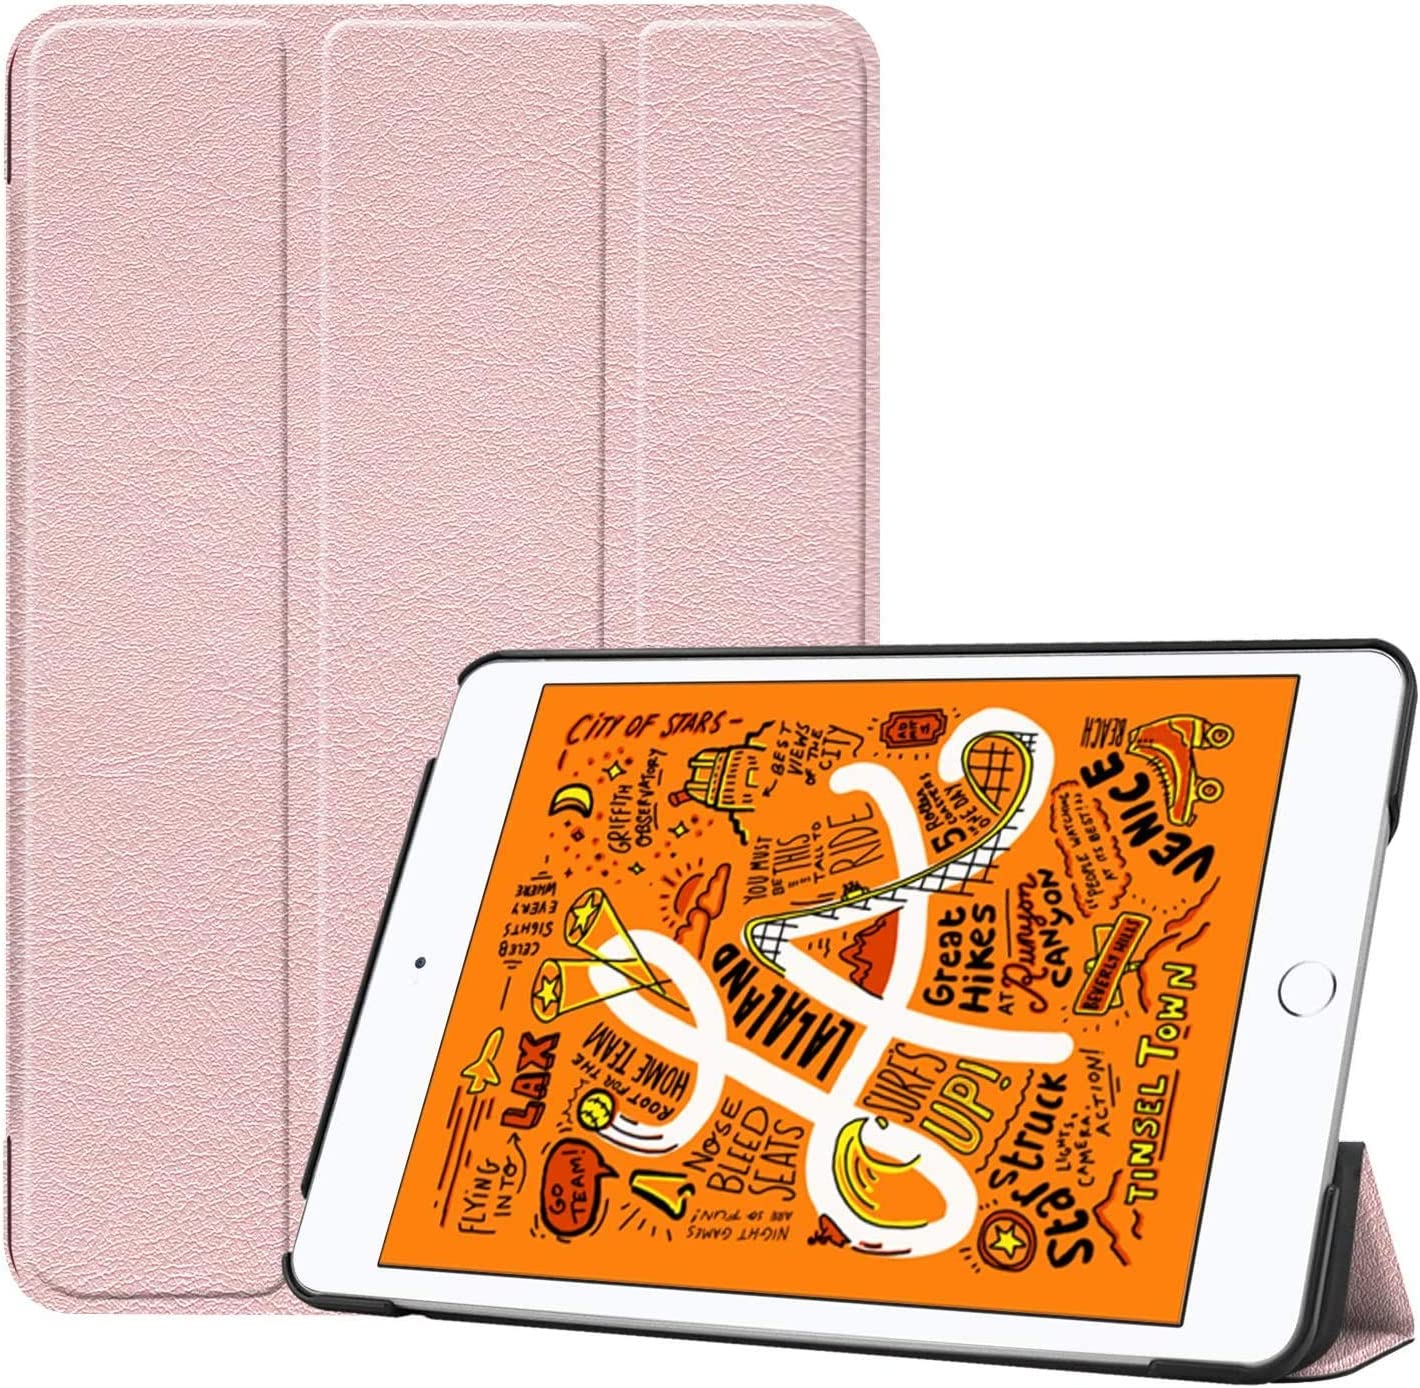 ORIbox Case for New iPad Mini 5th 7.9''(2019), Lightweight Trifold Stand Smart Cover with Auto Sleep/Wake Function,Hard Back Cover for iPad Mini 5, 7.9 Inch, Pink